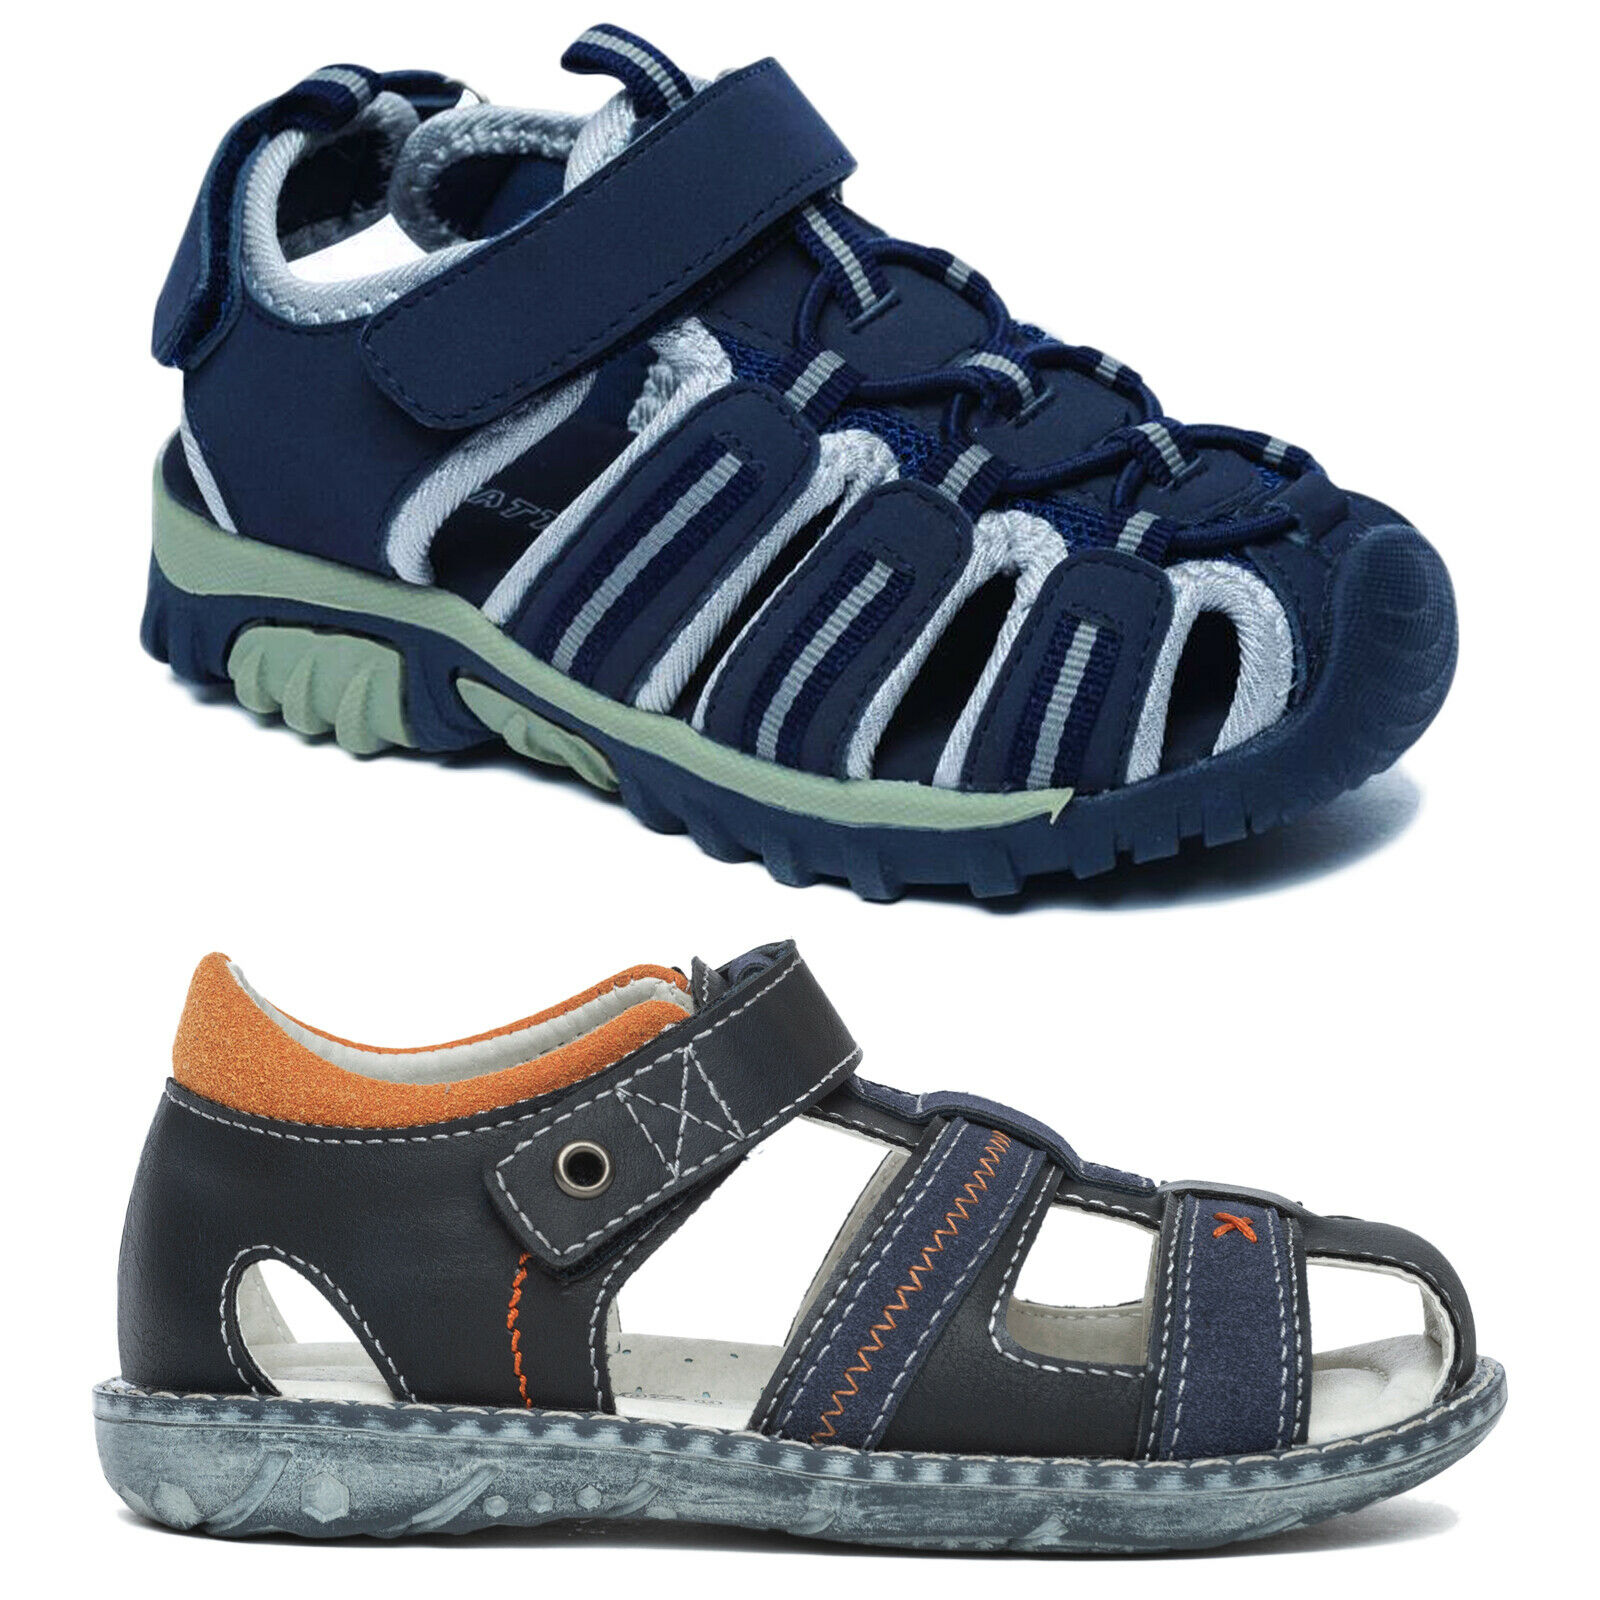 BOYS KIDS CASUAL SUMMER SANDAL SPORTS OUTDOOR CHILDREN WALKING TOUCH STRAP SHOES